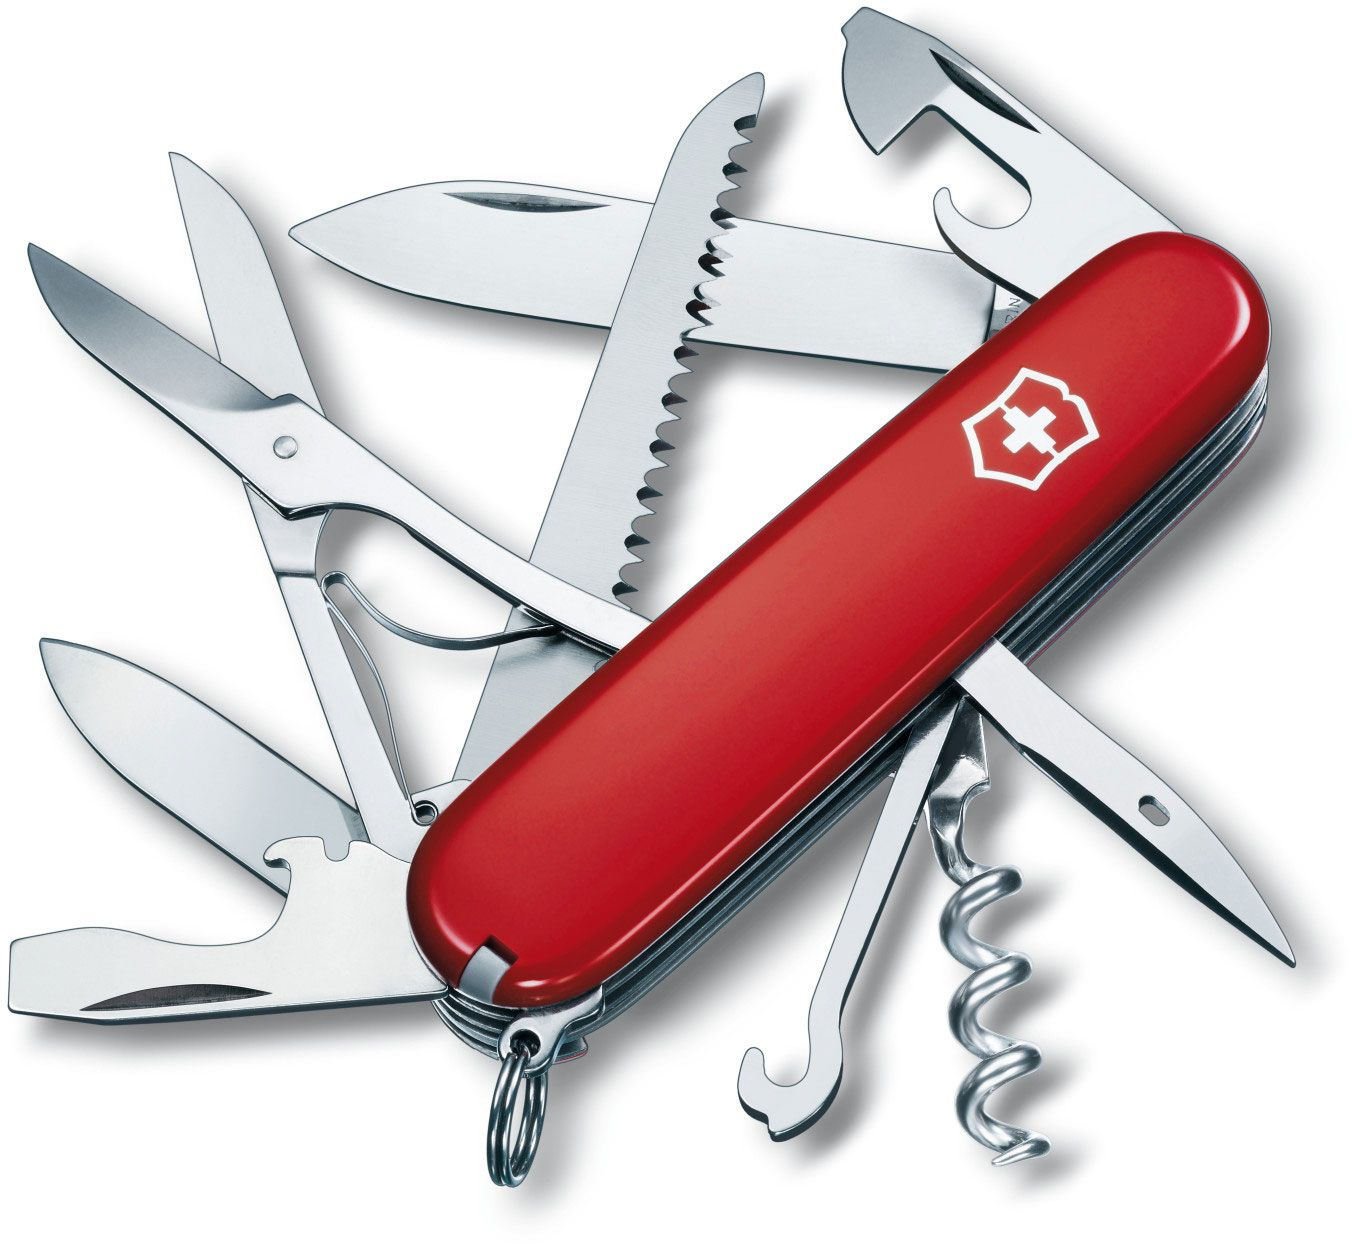 Victorinox Swiss Army Huntsman Multi-Tool, Red, 3.58 inch Closed (Old Sku 53201)